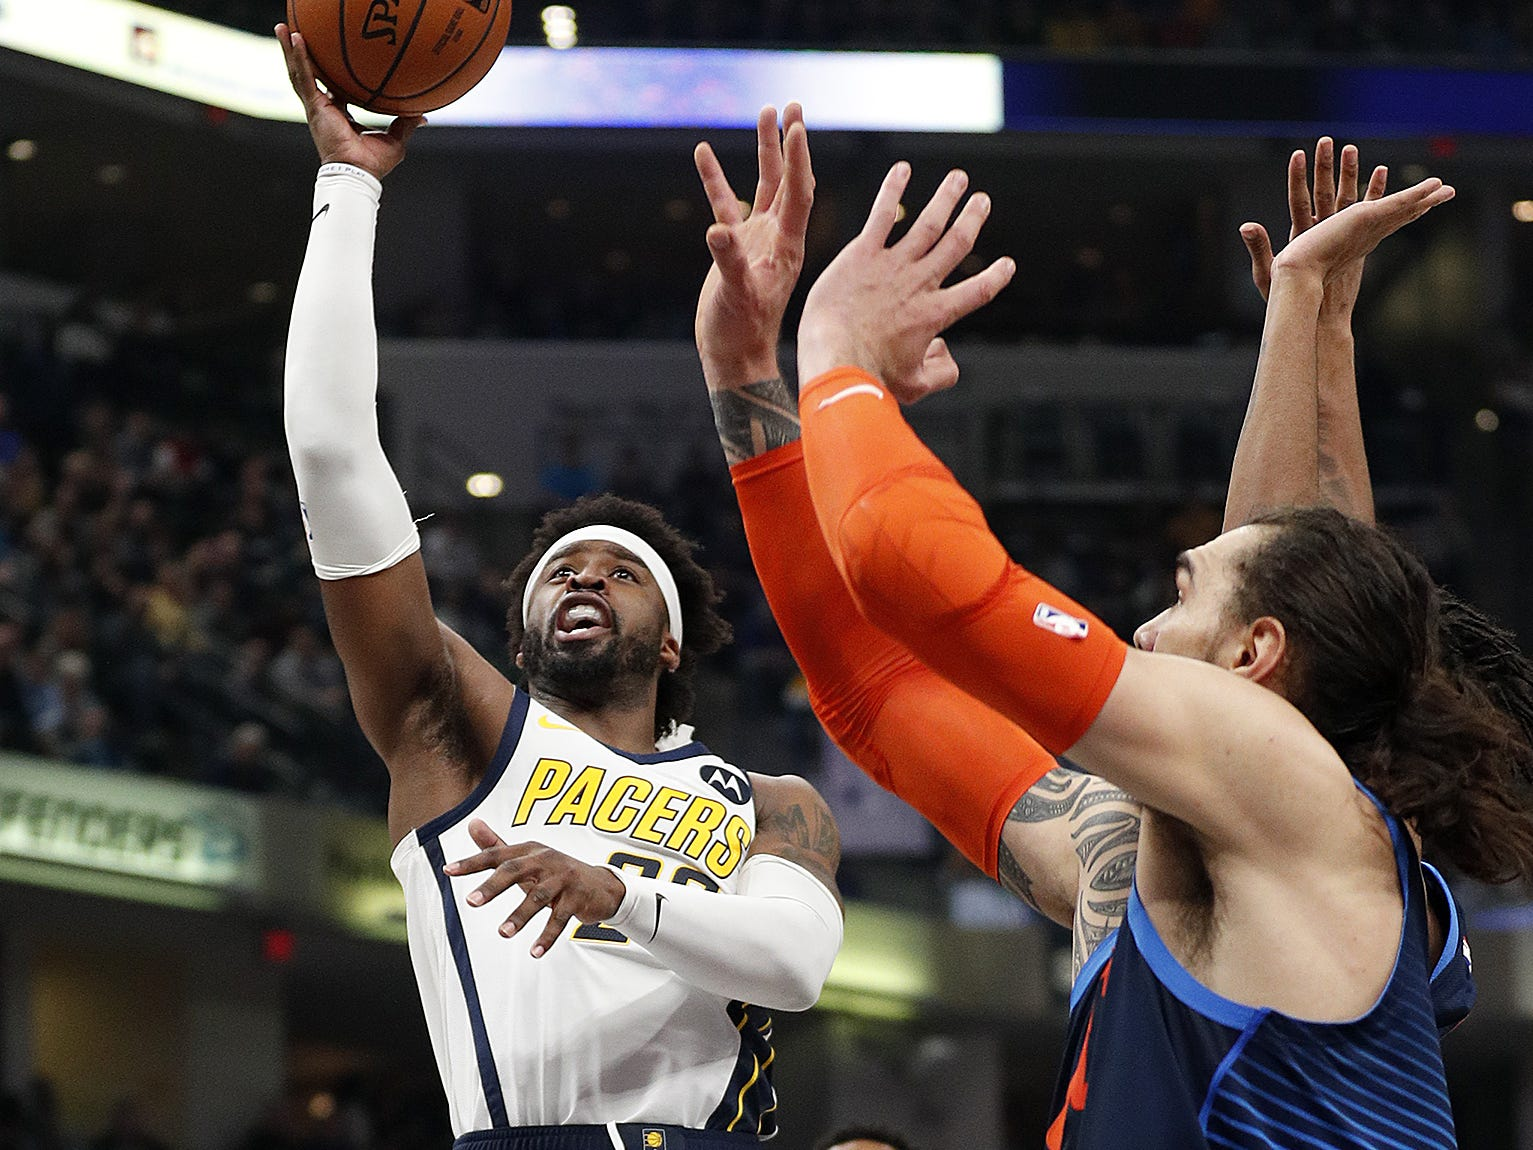 Indiana Pacers guard Wesley Matthews (23) shoots over Oklahoma City Thunder center Steven Adams (12) in the first half of their game at Bankers Life Fieldhouse on Thursday, Mar. 14, 2019.